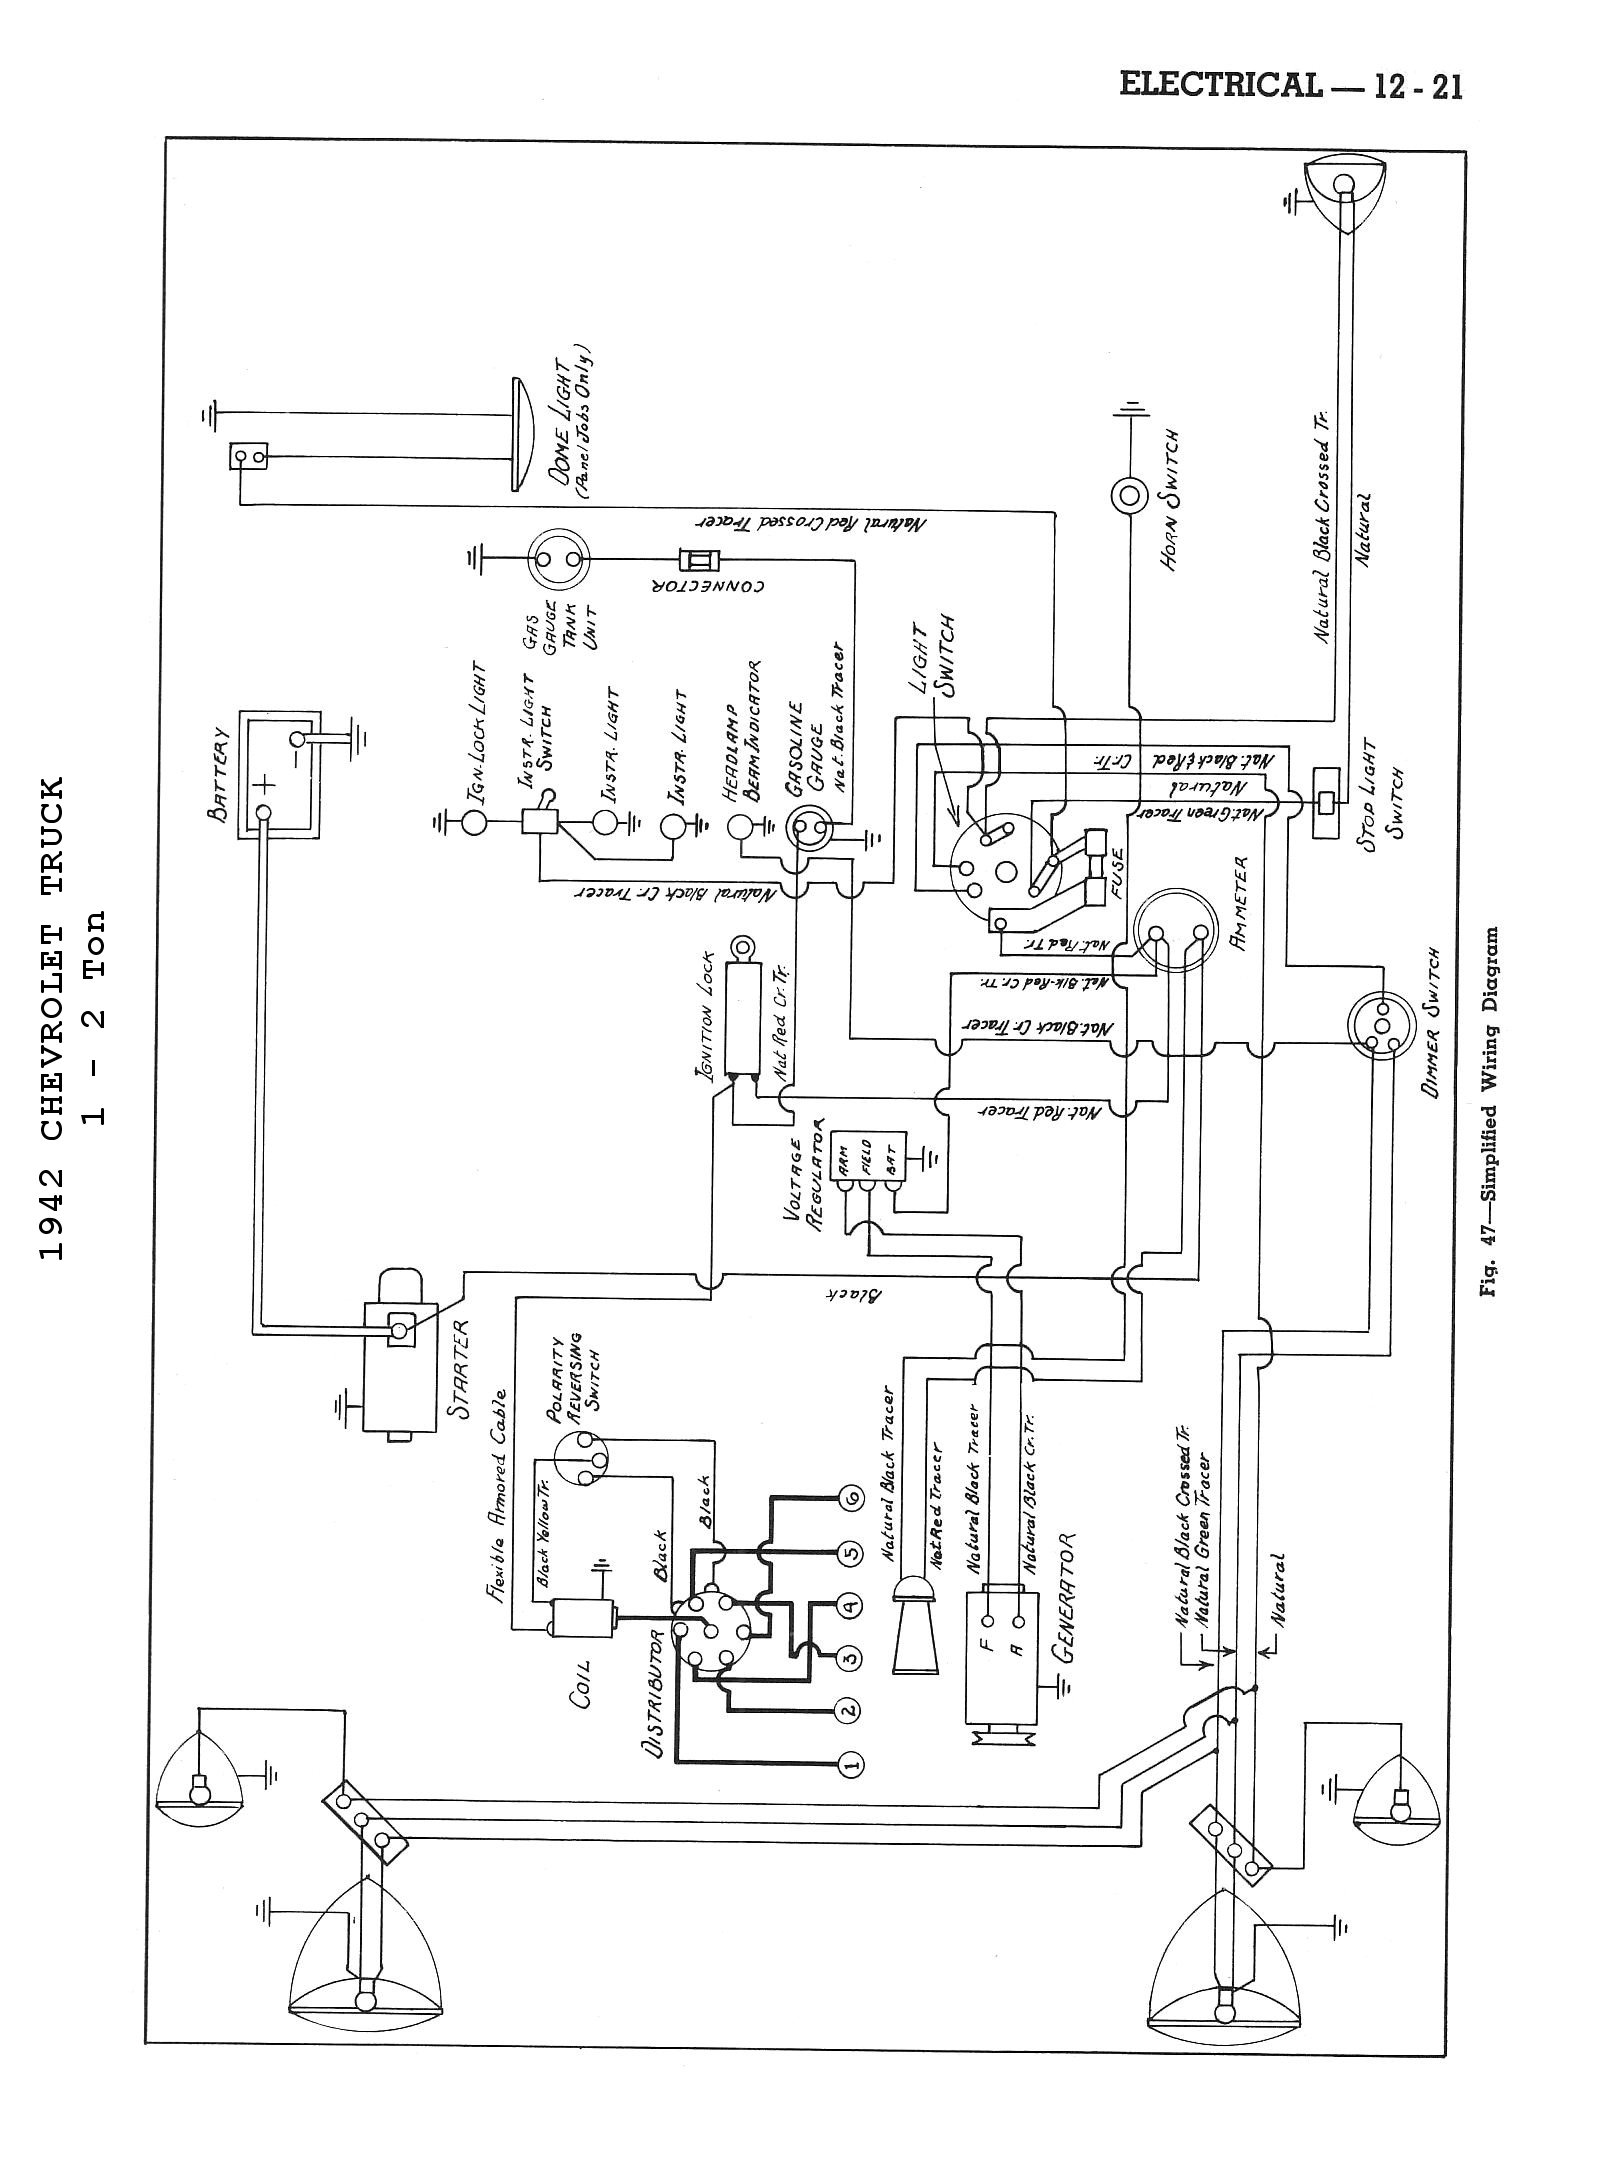 42cm4x2t1221 chevy wiring diagrams on wiring schematic for cm beds